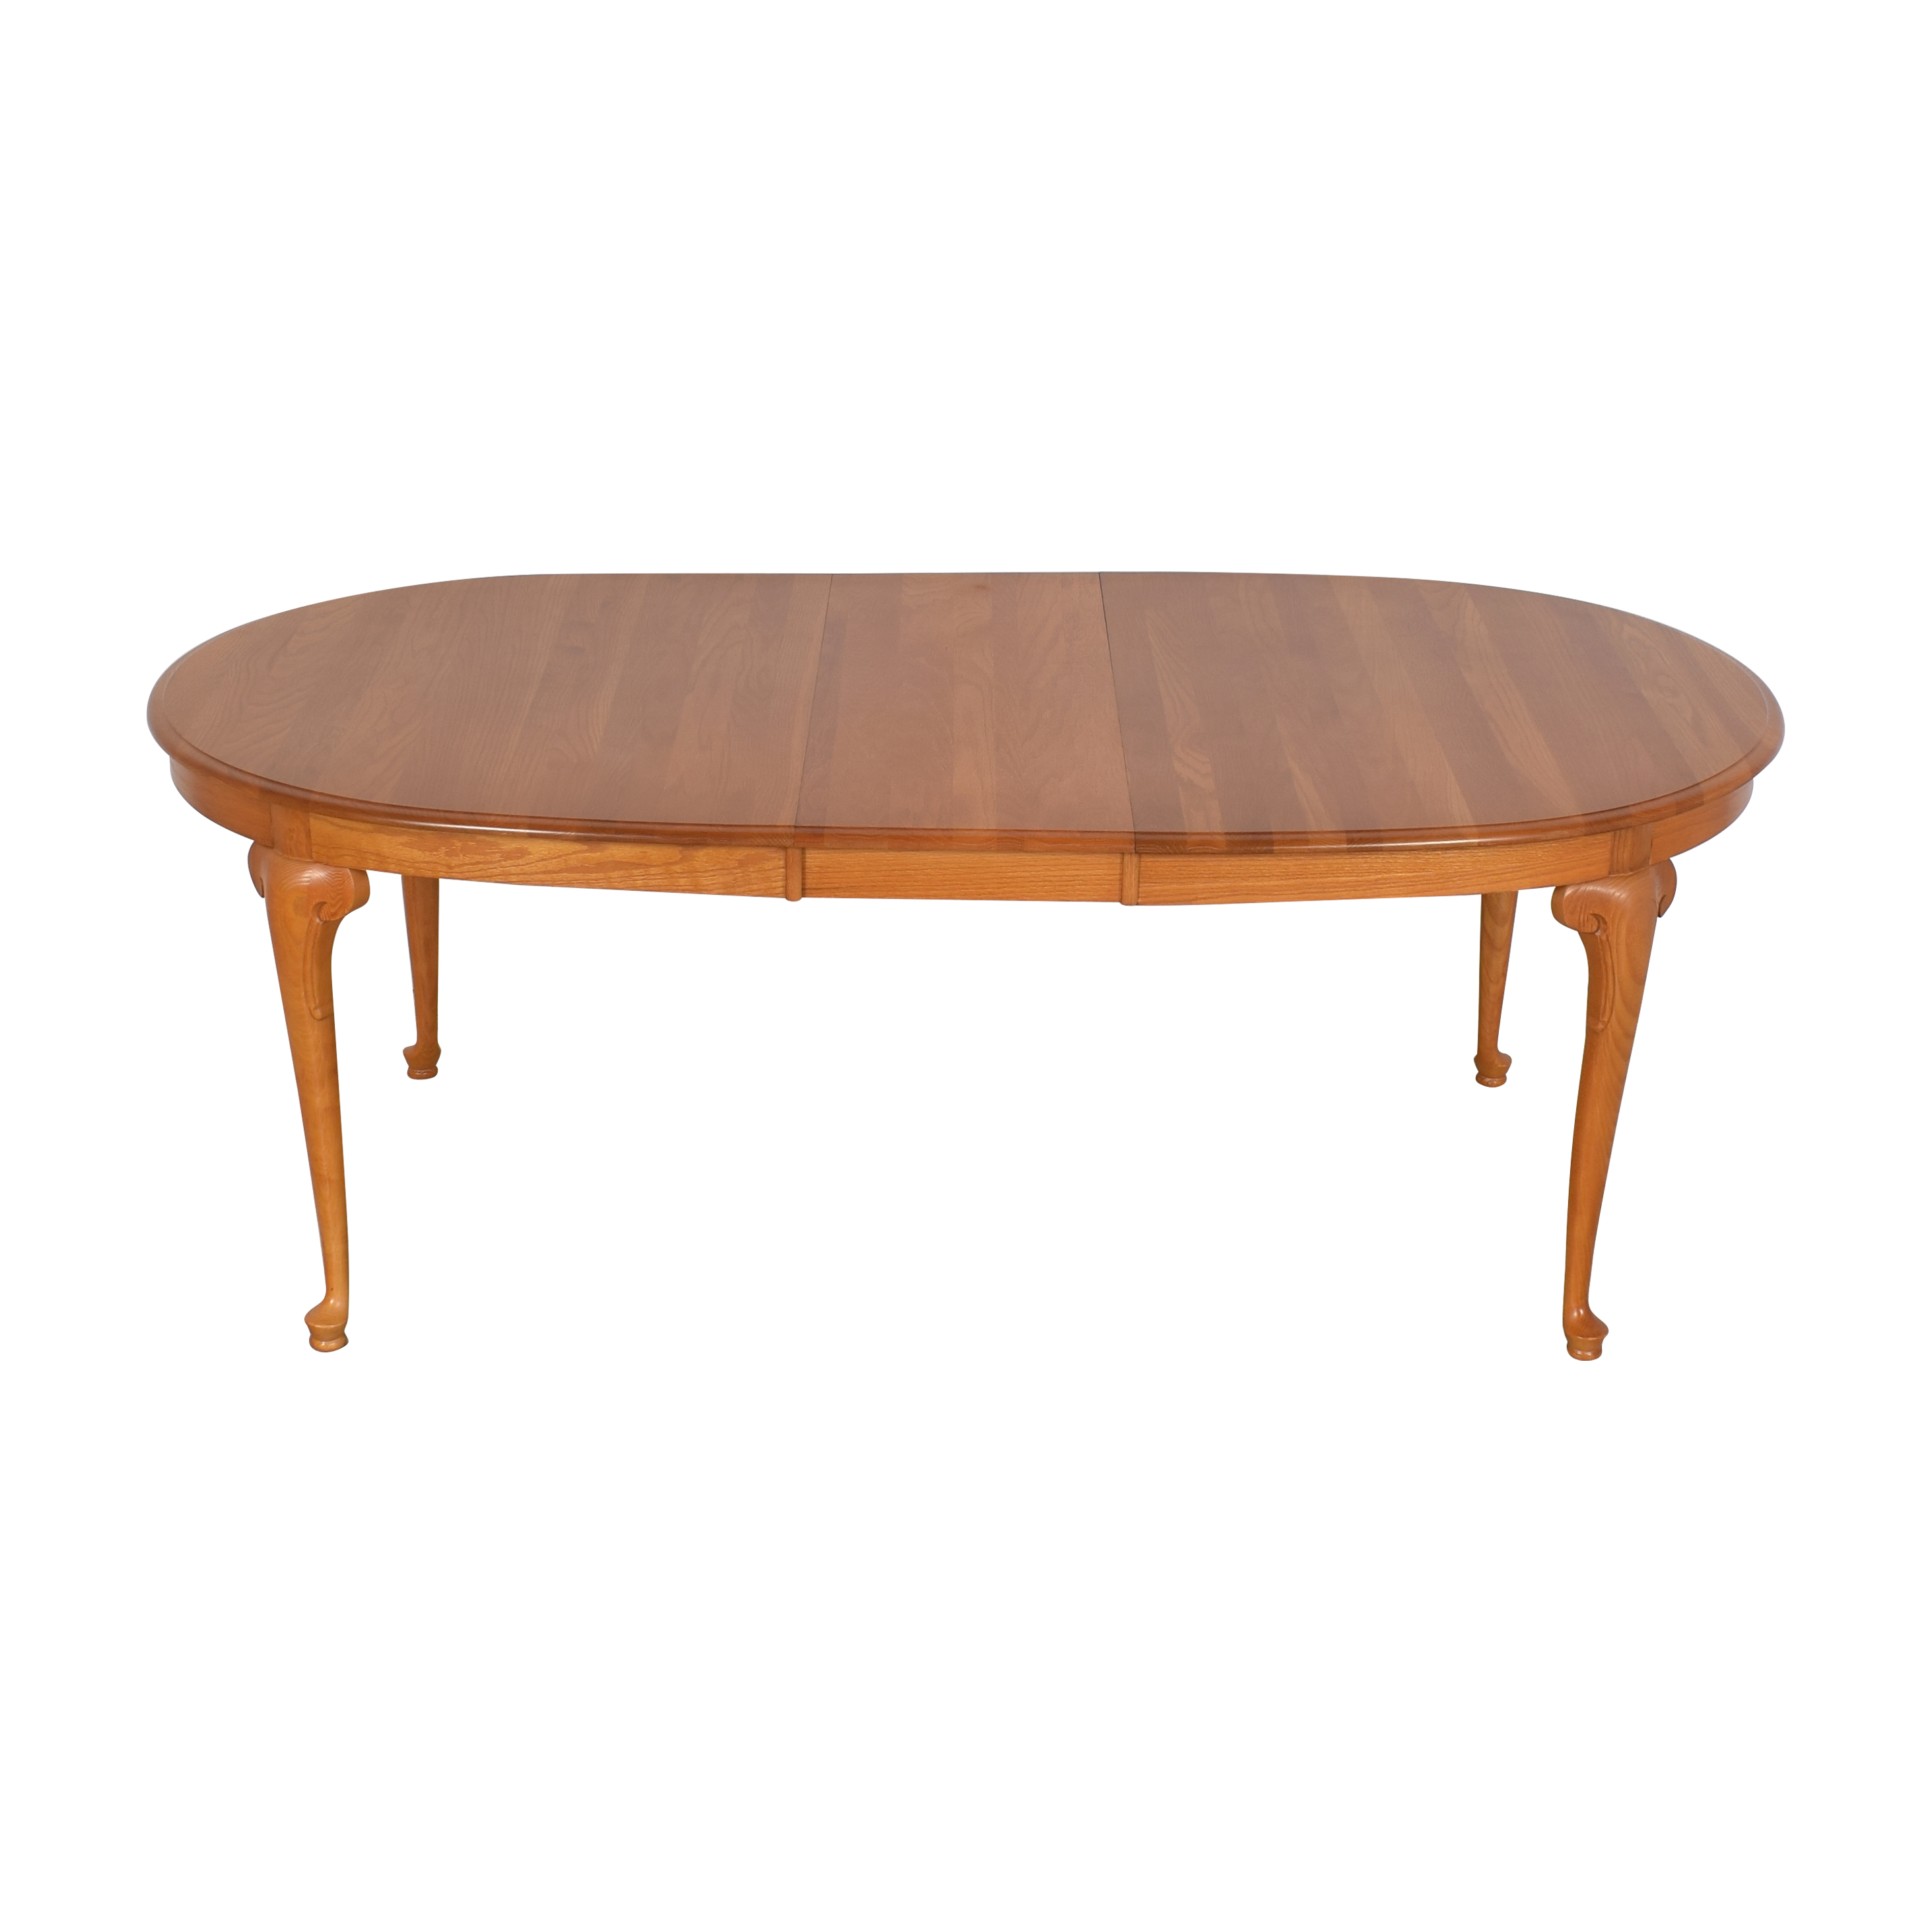 Sumter Cabinet Co. Sumter Cabiniet Company Dinner Table price